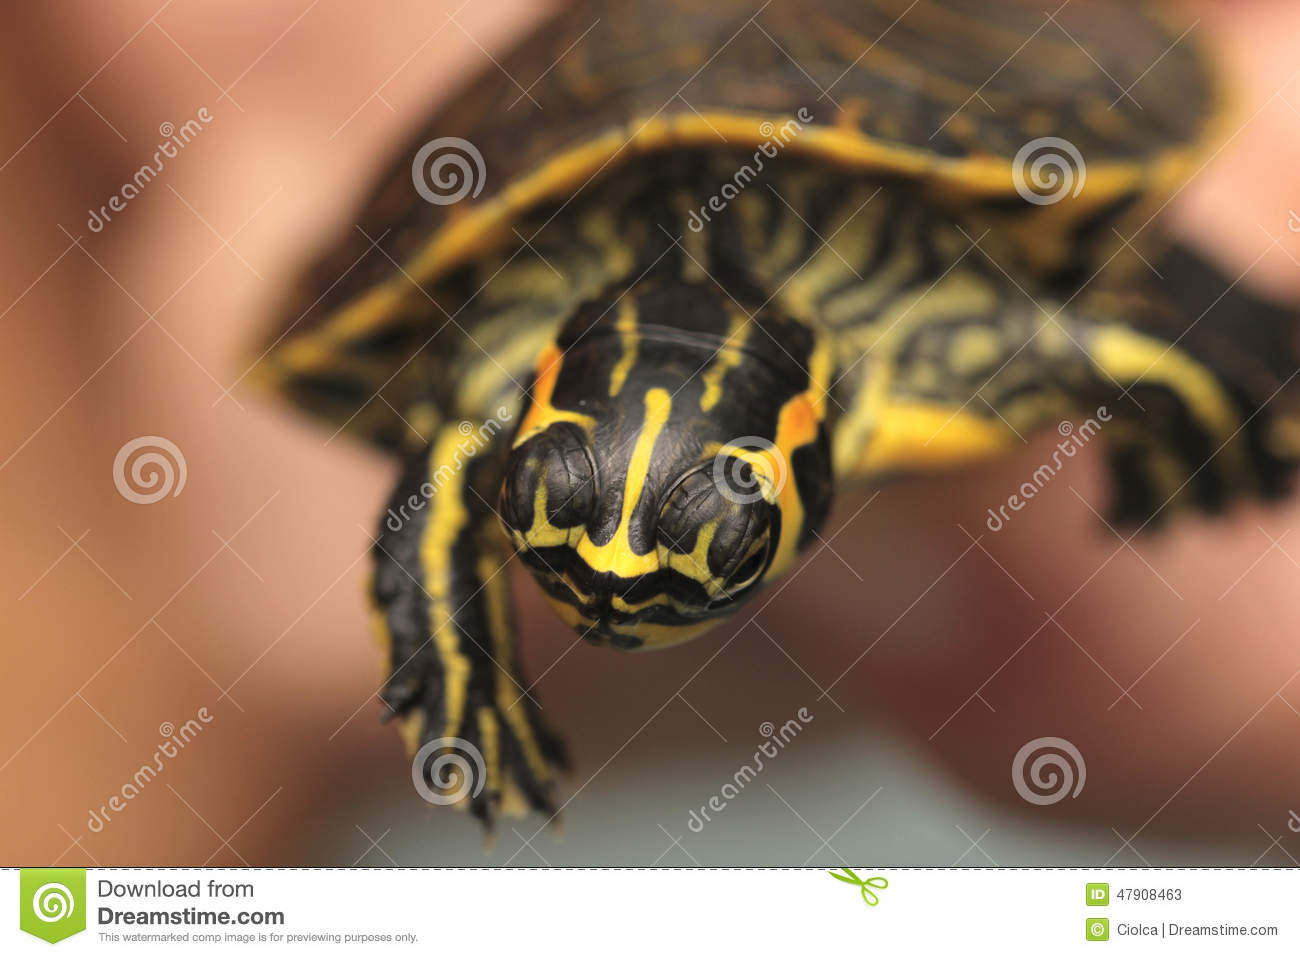 Holding a small painted turtle